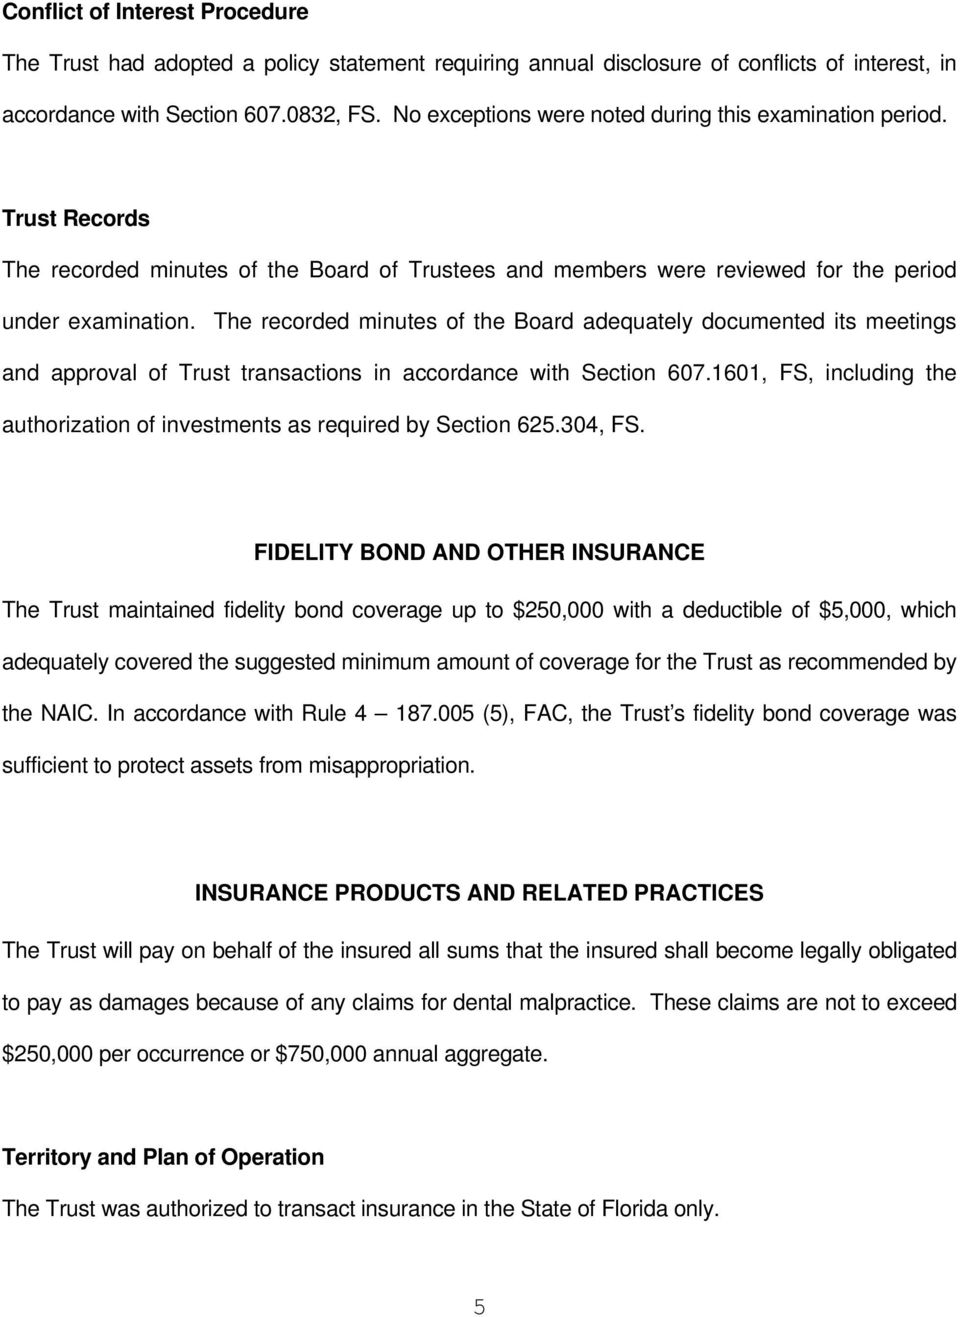 The recorded minutes of the Board adequately documented its meetings and approval of Trust transactions in accordance with Section 607.